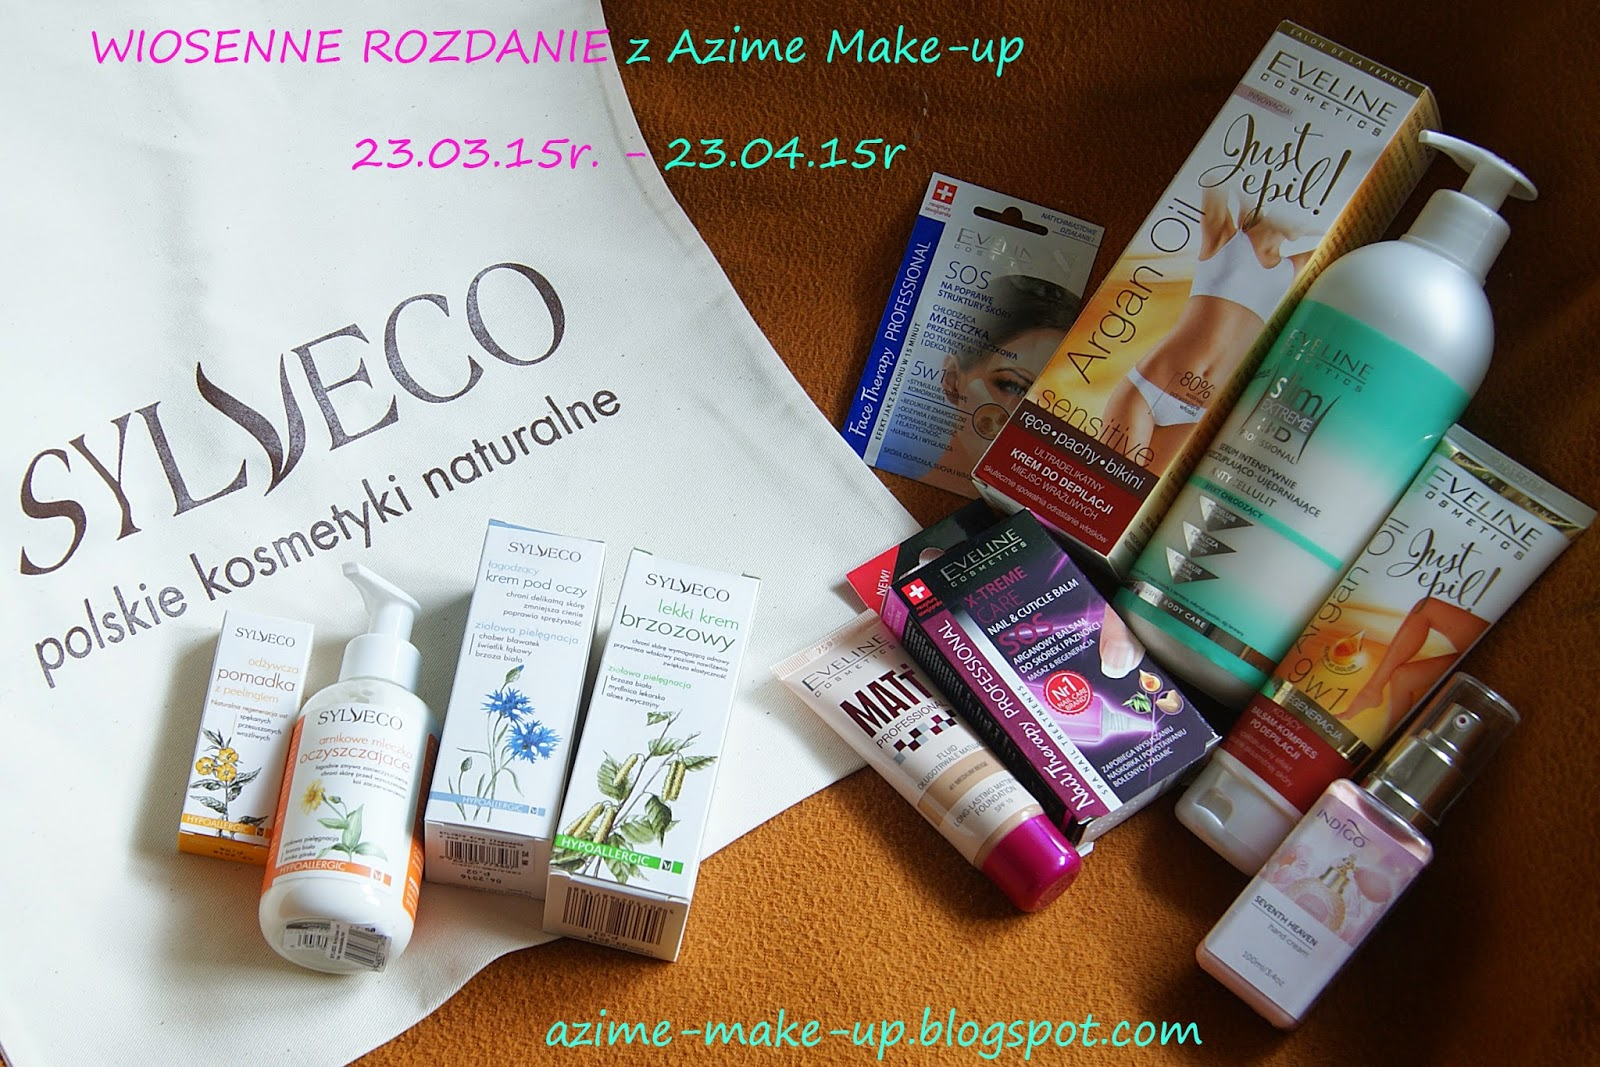 http://azime-make-up.blogspot.com/2015/03/197-wiosenne-rozdanie-z-azime-make-up.html